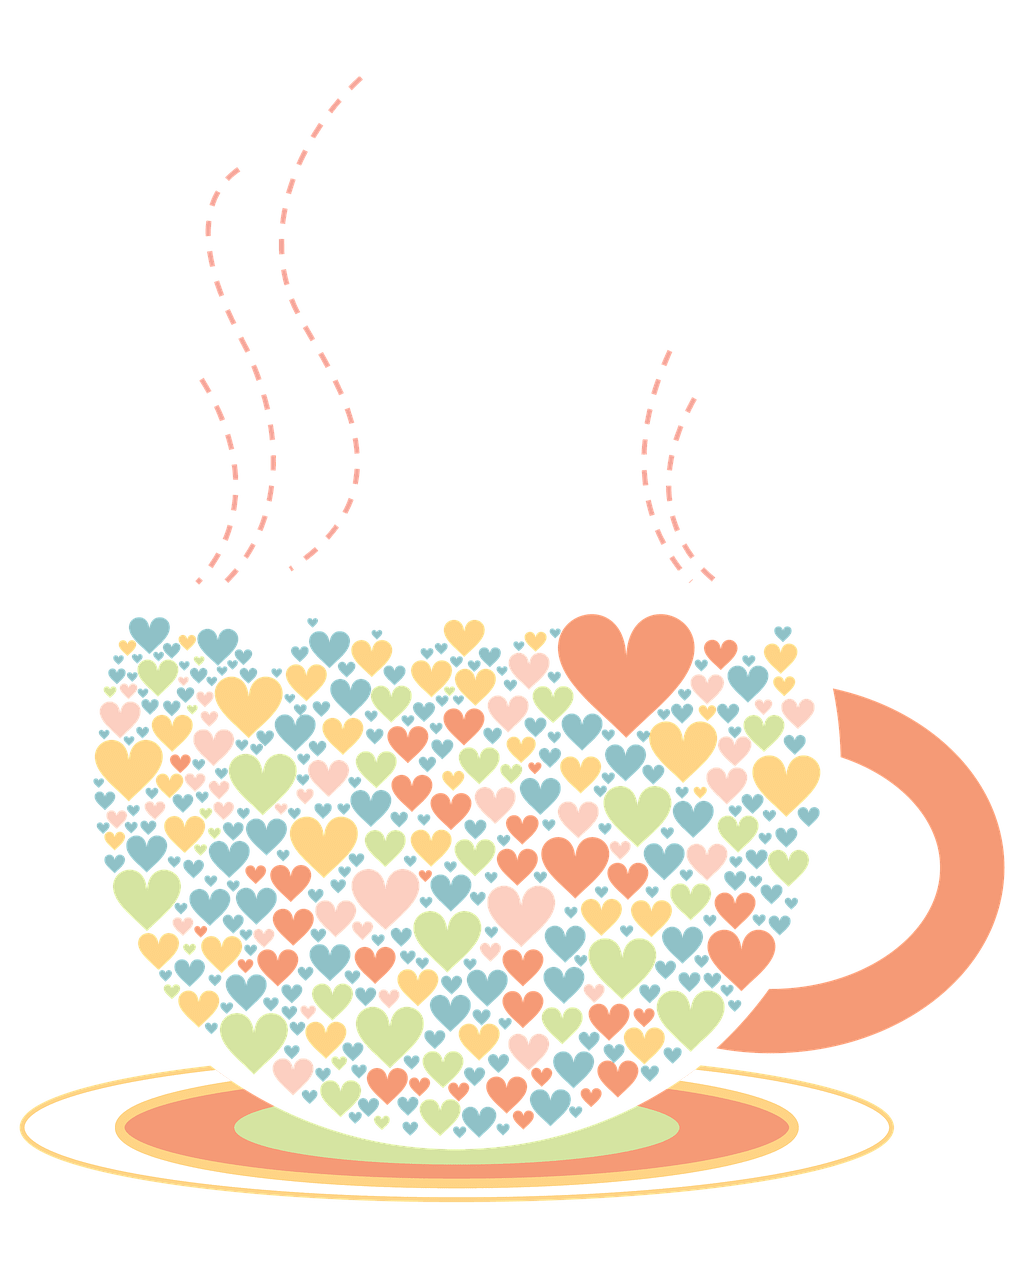 Coffee cup clipart heart. Hearts drawing transparent png